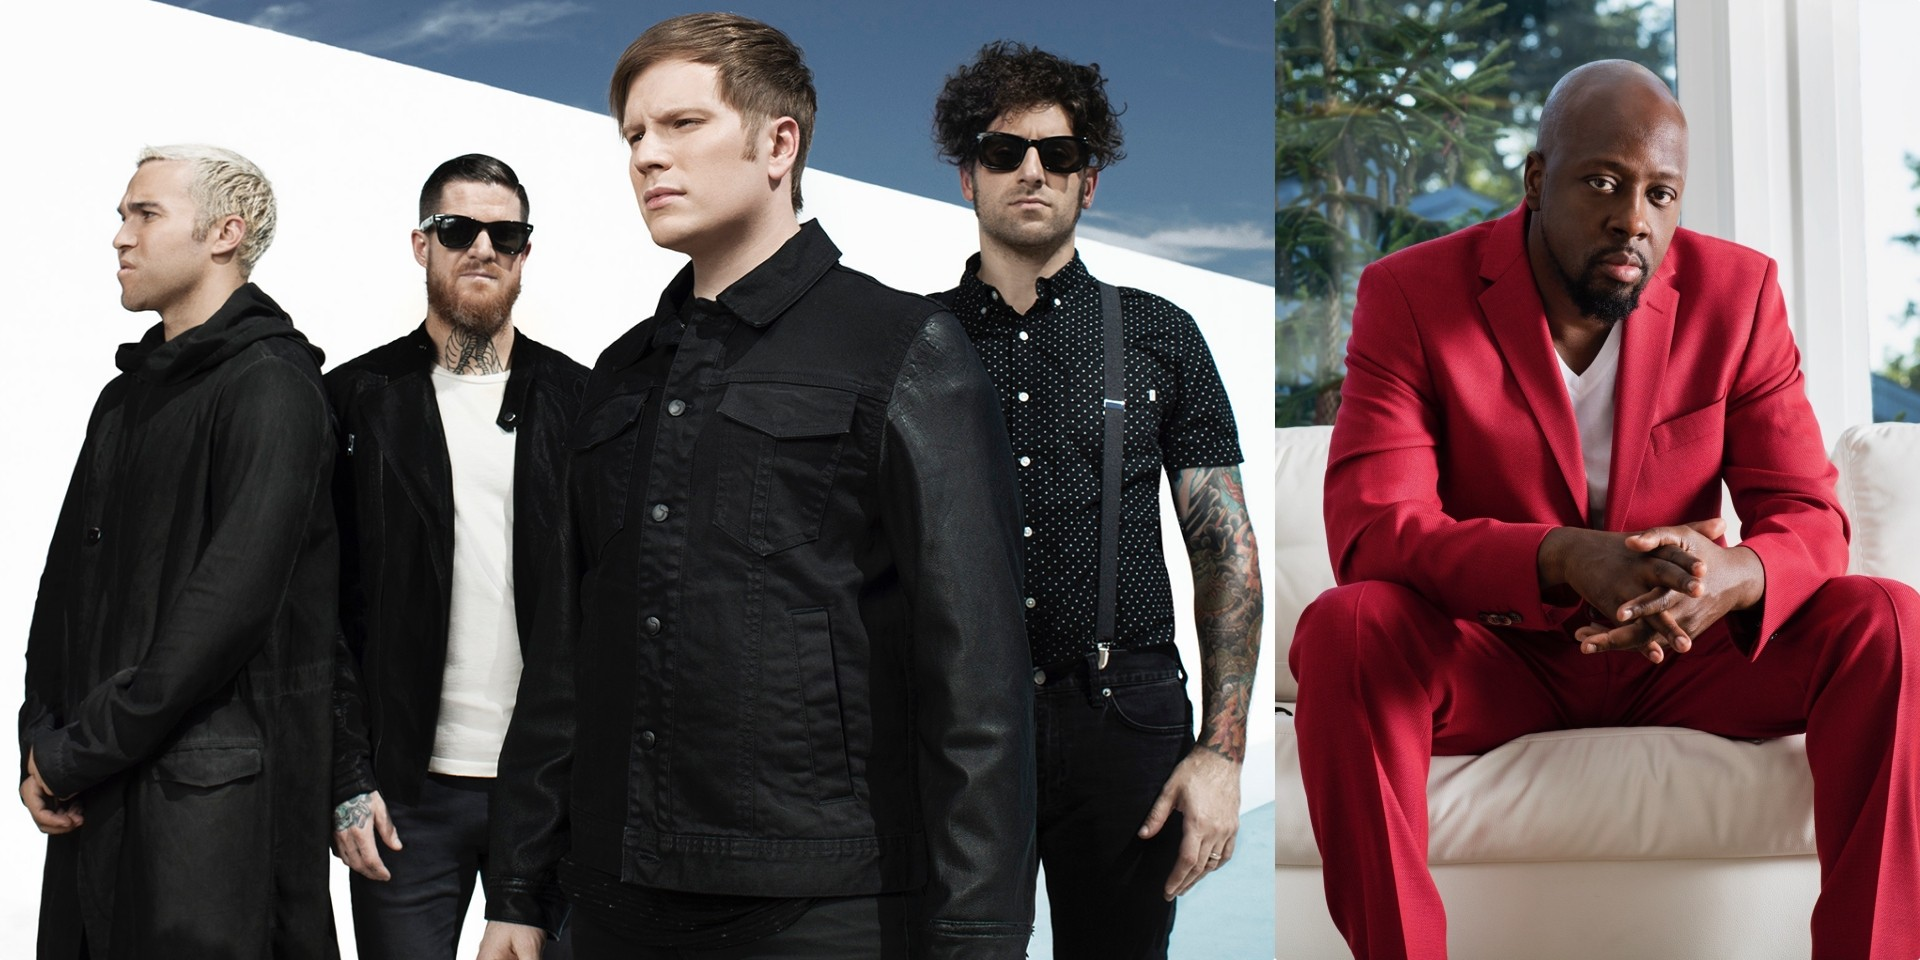 Fall Out Boy shares new song with Wyclef Jean, 'Dear Future Self (Hands Up)', announces new greatest hits album